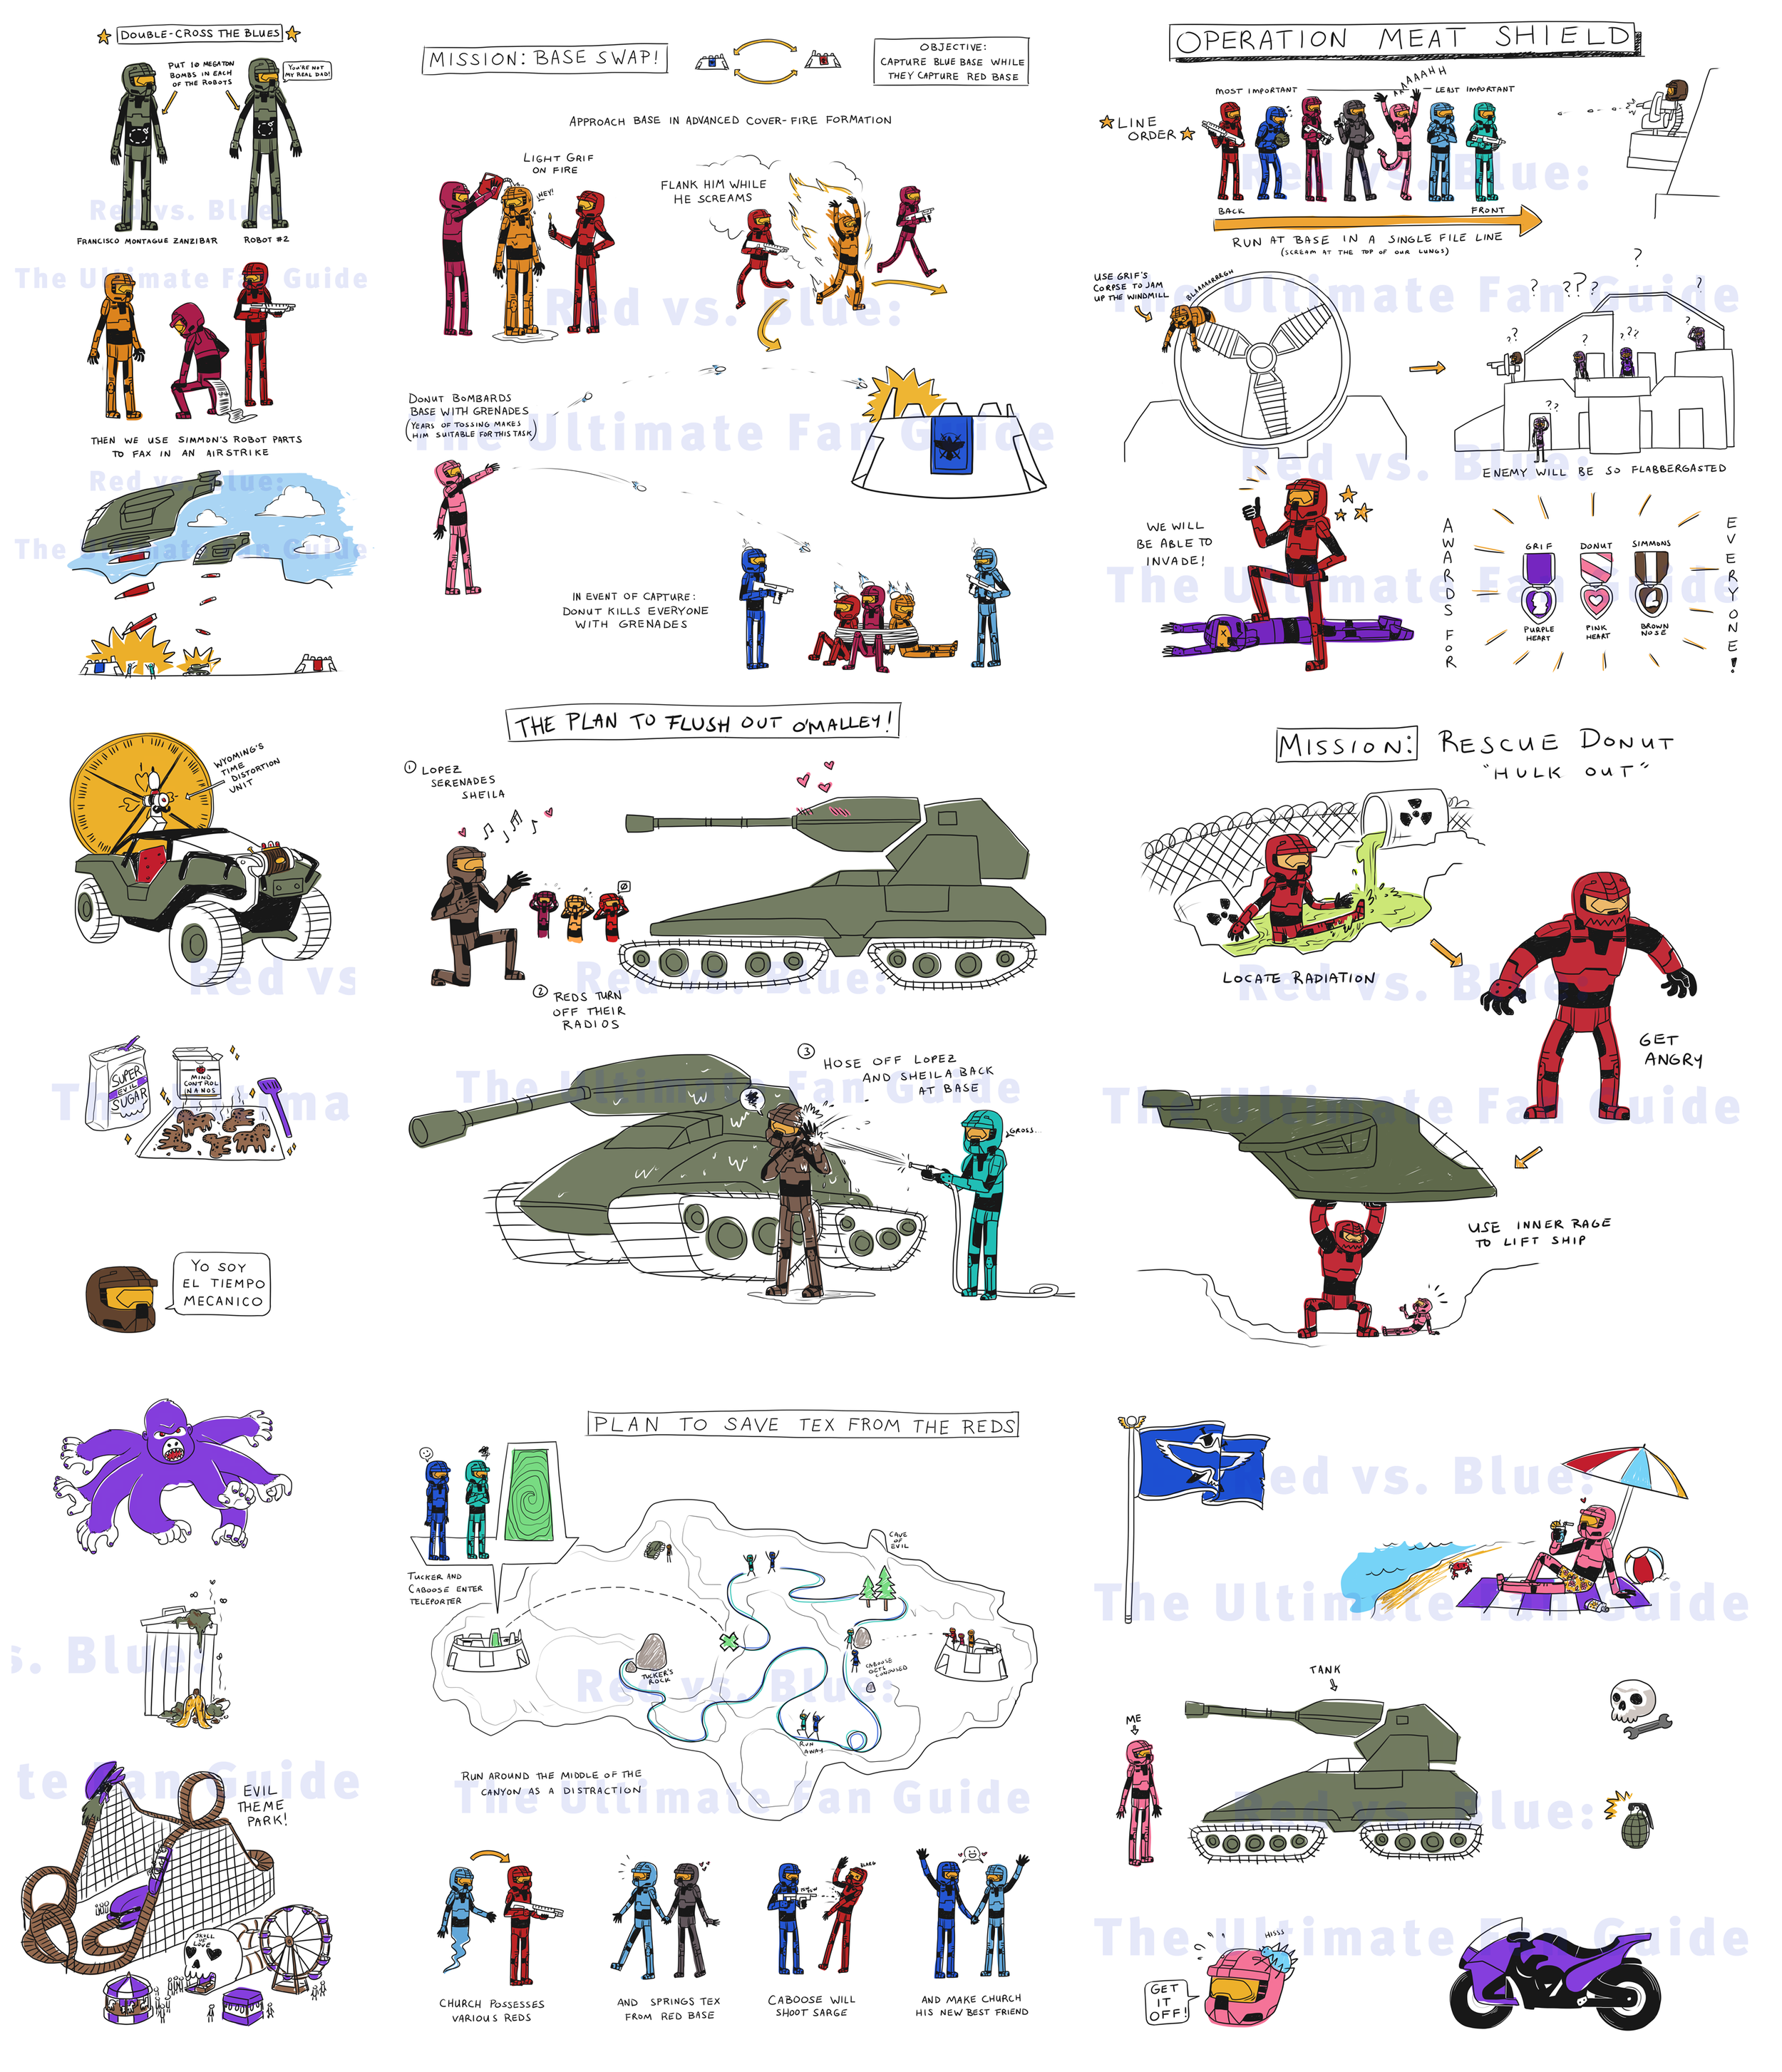 Red vs Blue - The Ultimate Fan Guide Illustrations